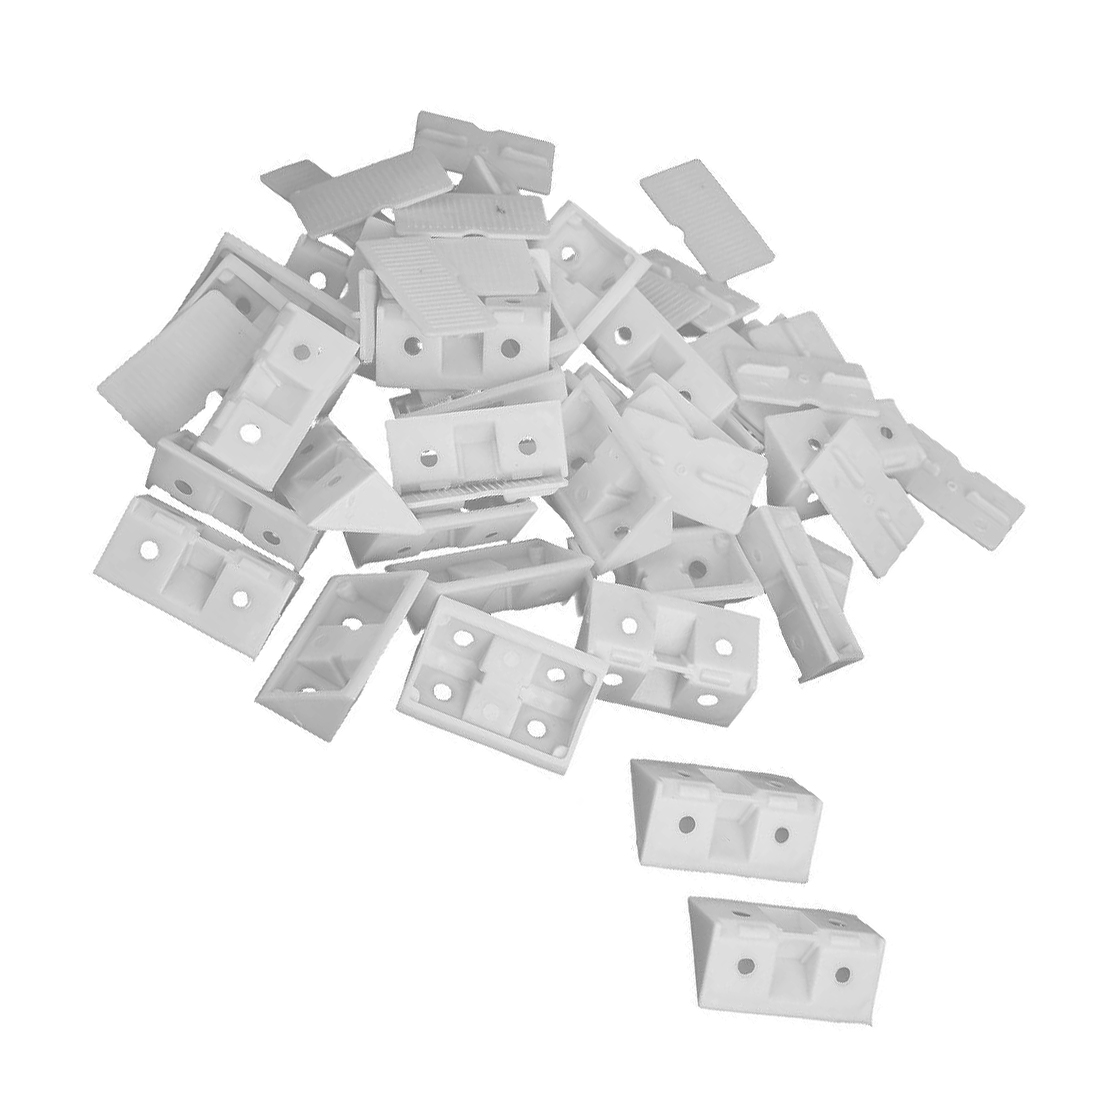 SHGO Hot 30pcs Shelf Cabinet 90 Degree Plastic Corner Braces Angle Brackets White